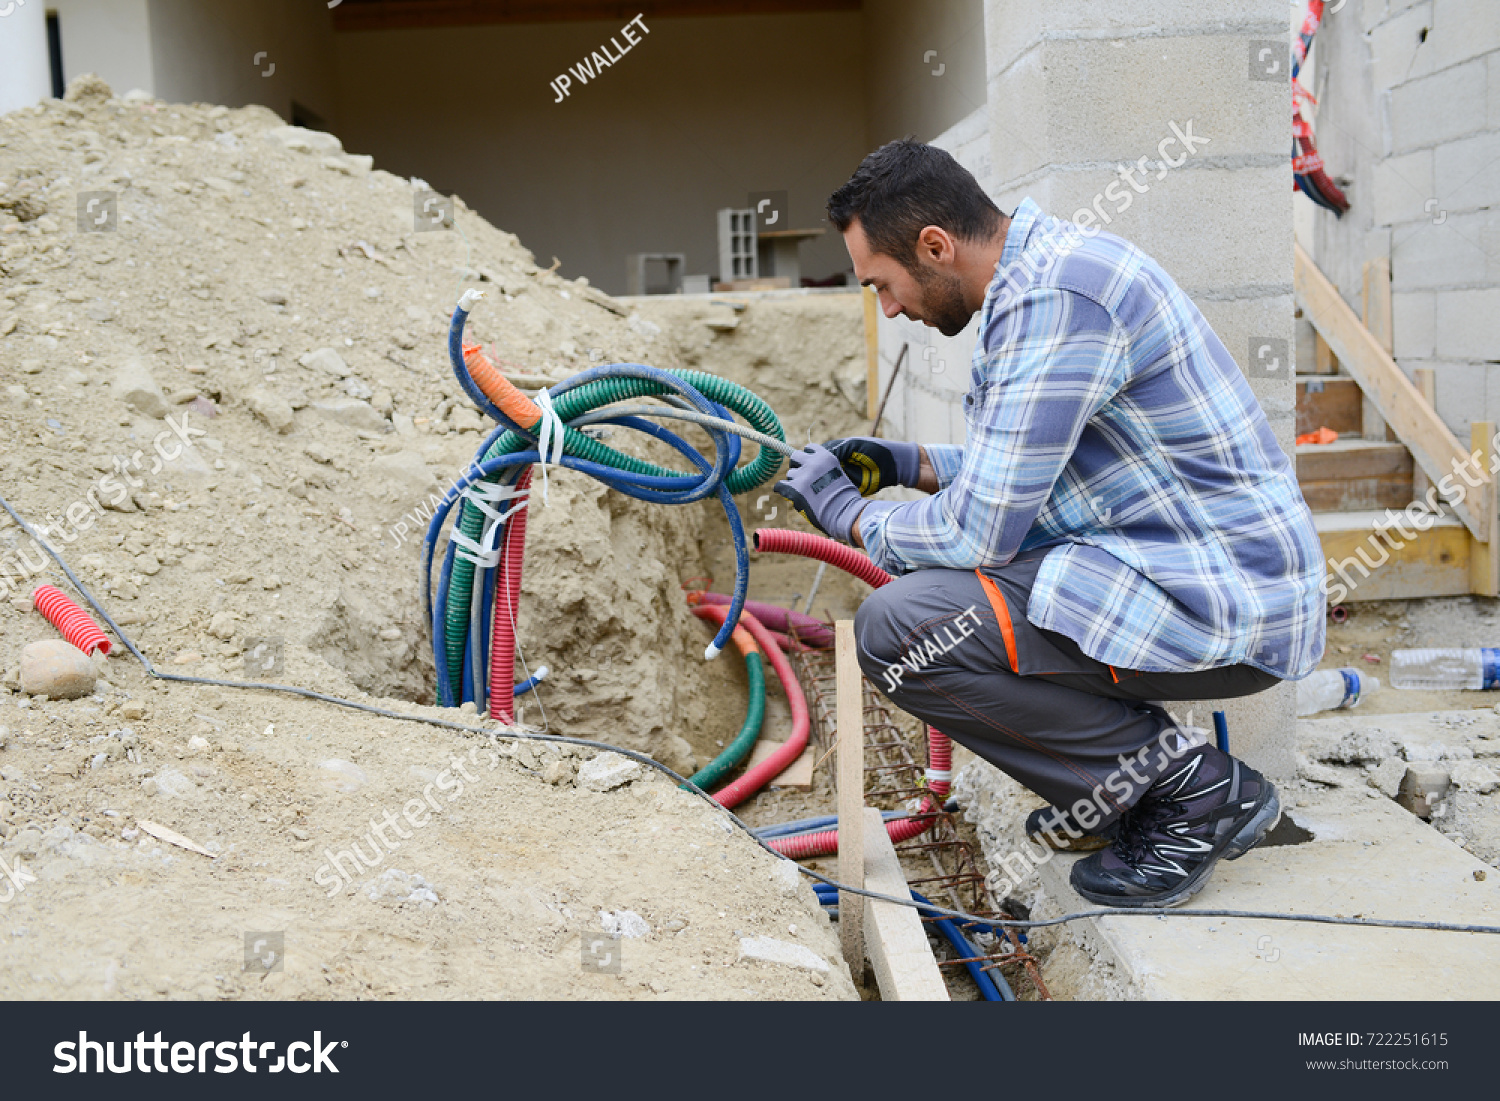 Handsome Young Man Electrician Wiring Cable Stock Photo Edit Now For A House Outdoor In Building Construction Site